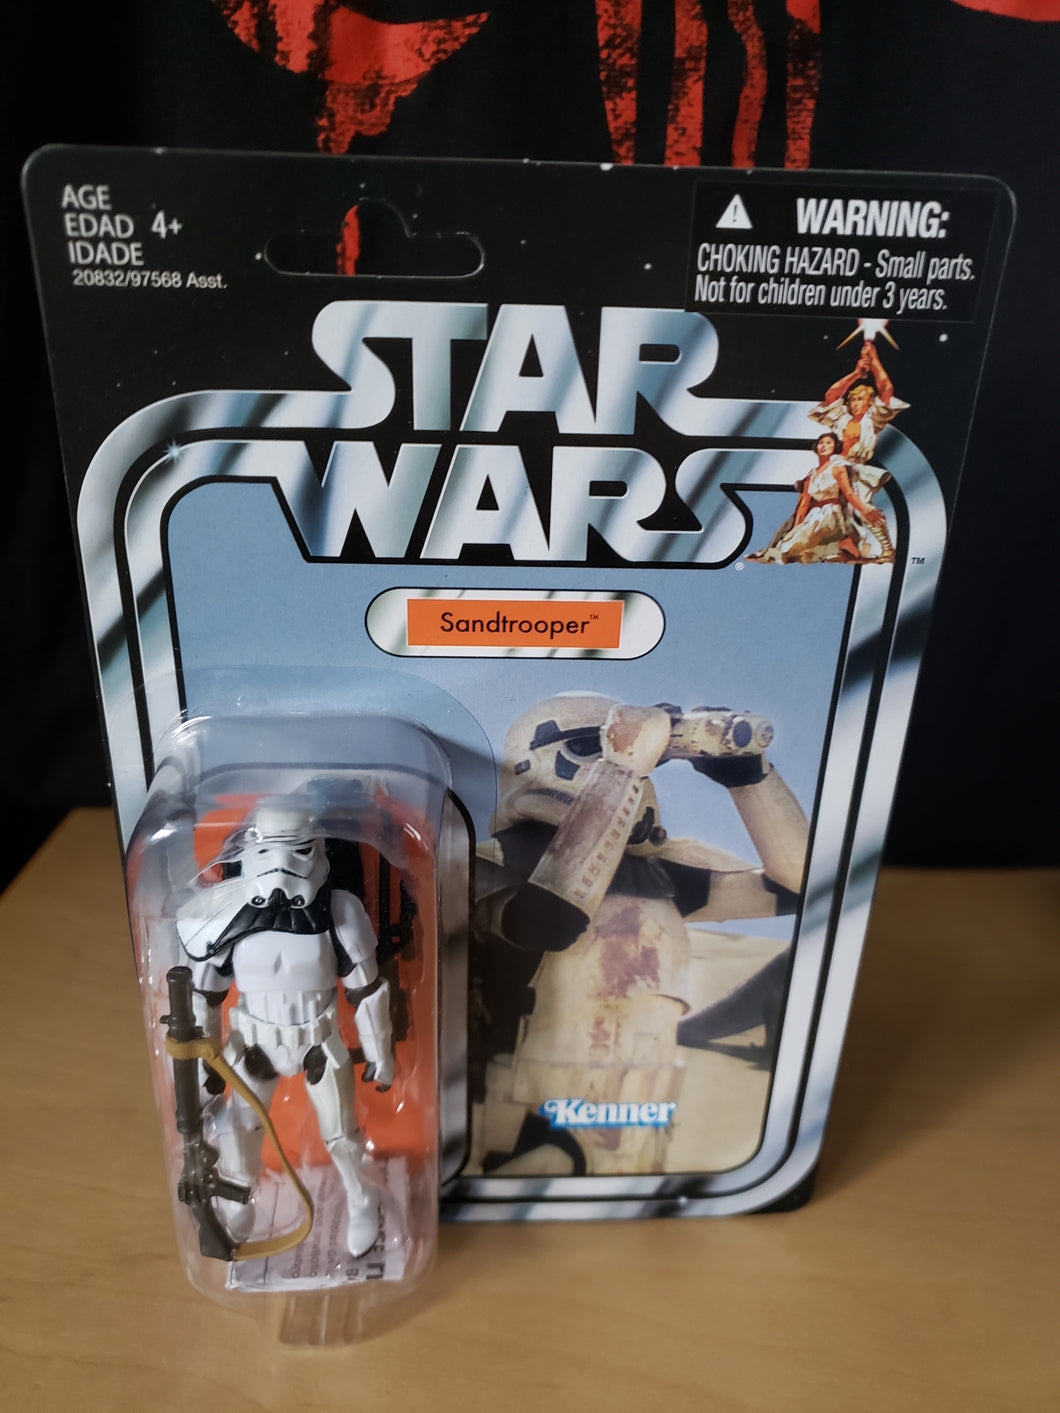 2010 Star Wars TVC Star Wars - Sandtrooper VC14